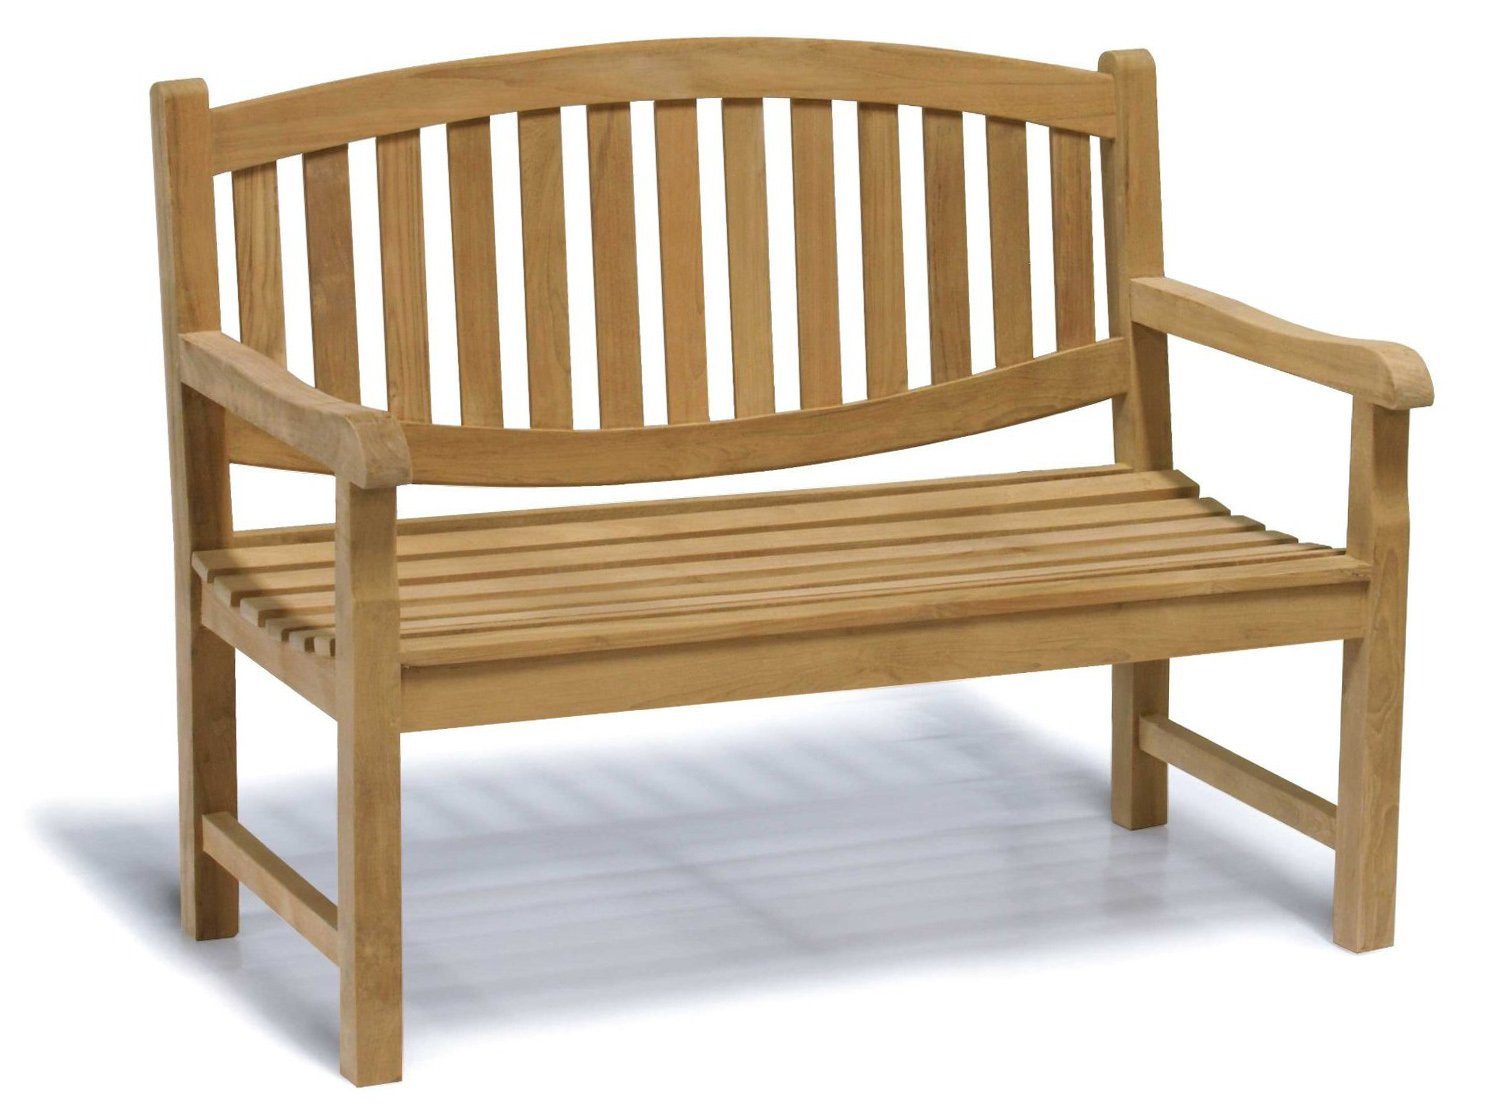 Jati Kennington Oval Teak 2 Seater Garden Bench - 4ft Garden Bench ...